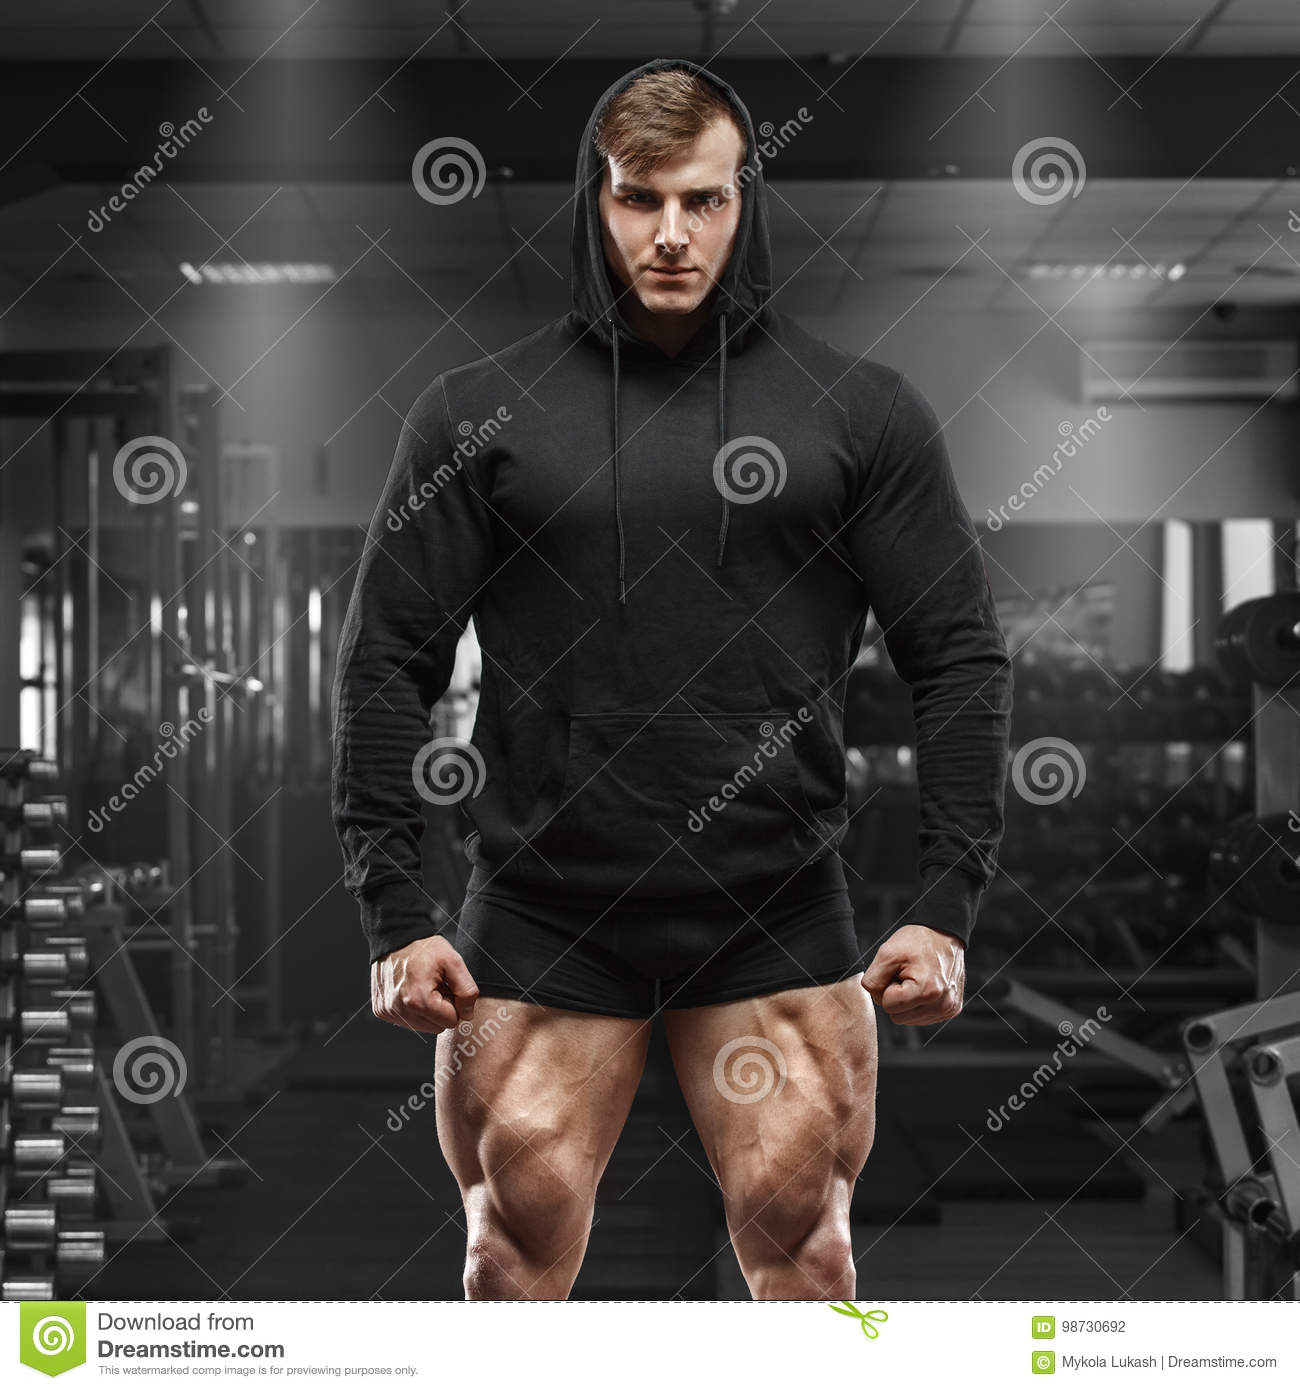 Download Muscular Man With Muscle Legs In Gym. Strong Male In Black Hoodie With Big Quads Stock Photo - Image of posing, muscle: 98730692